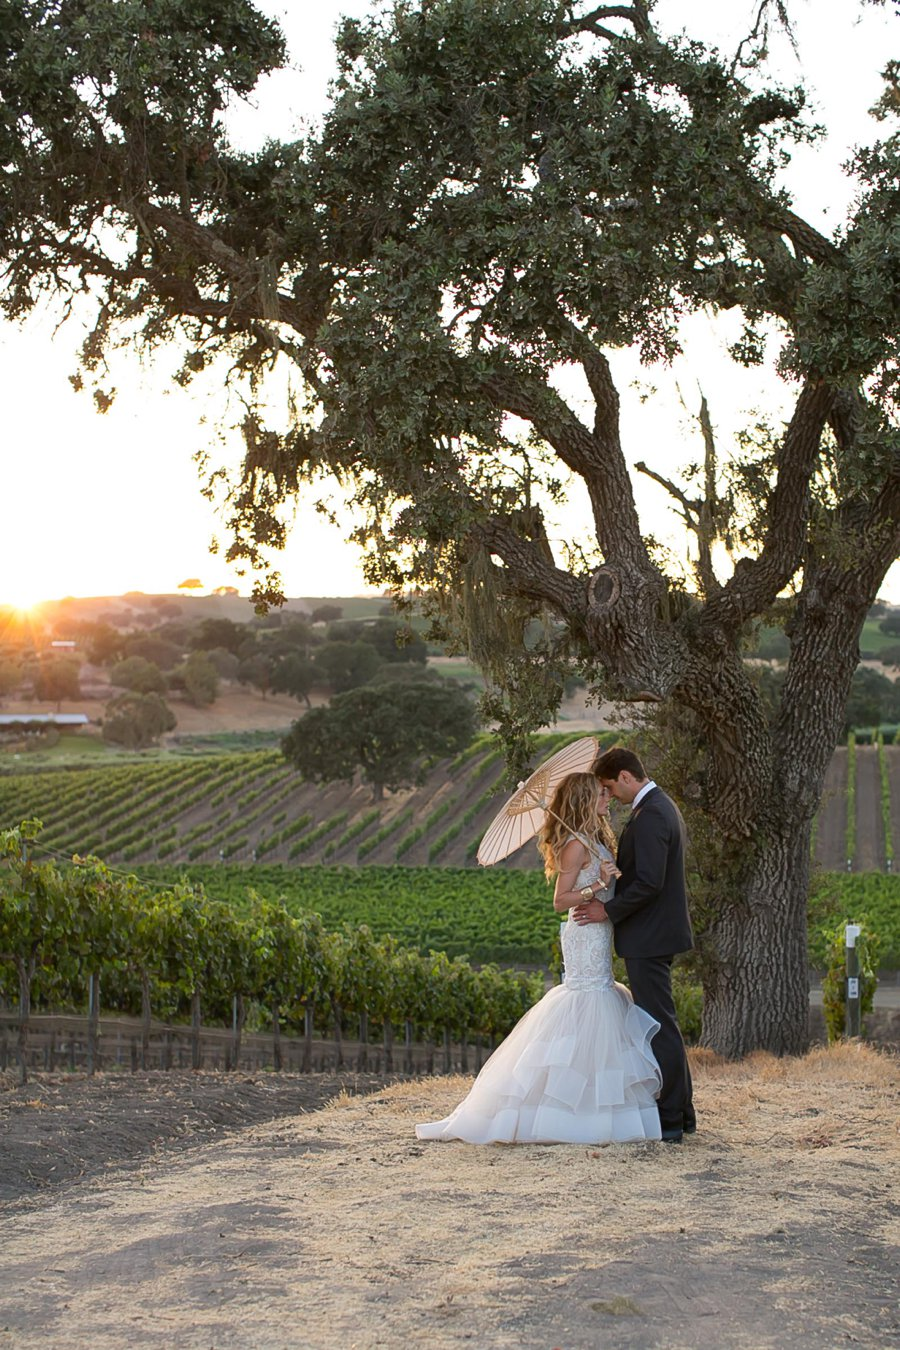 STOLPMANN VILLA AND VINEYARDS | LOS OLIVOS WEDDING PHOTOGRAPHER CHRIS HOLT PHOTOGRAPHY_064.jpg